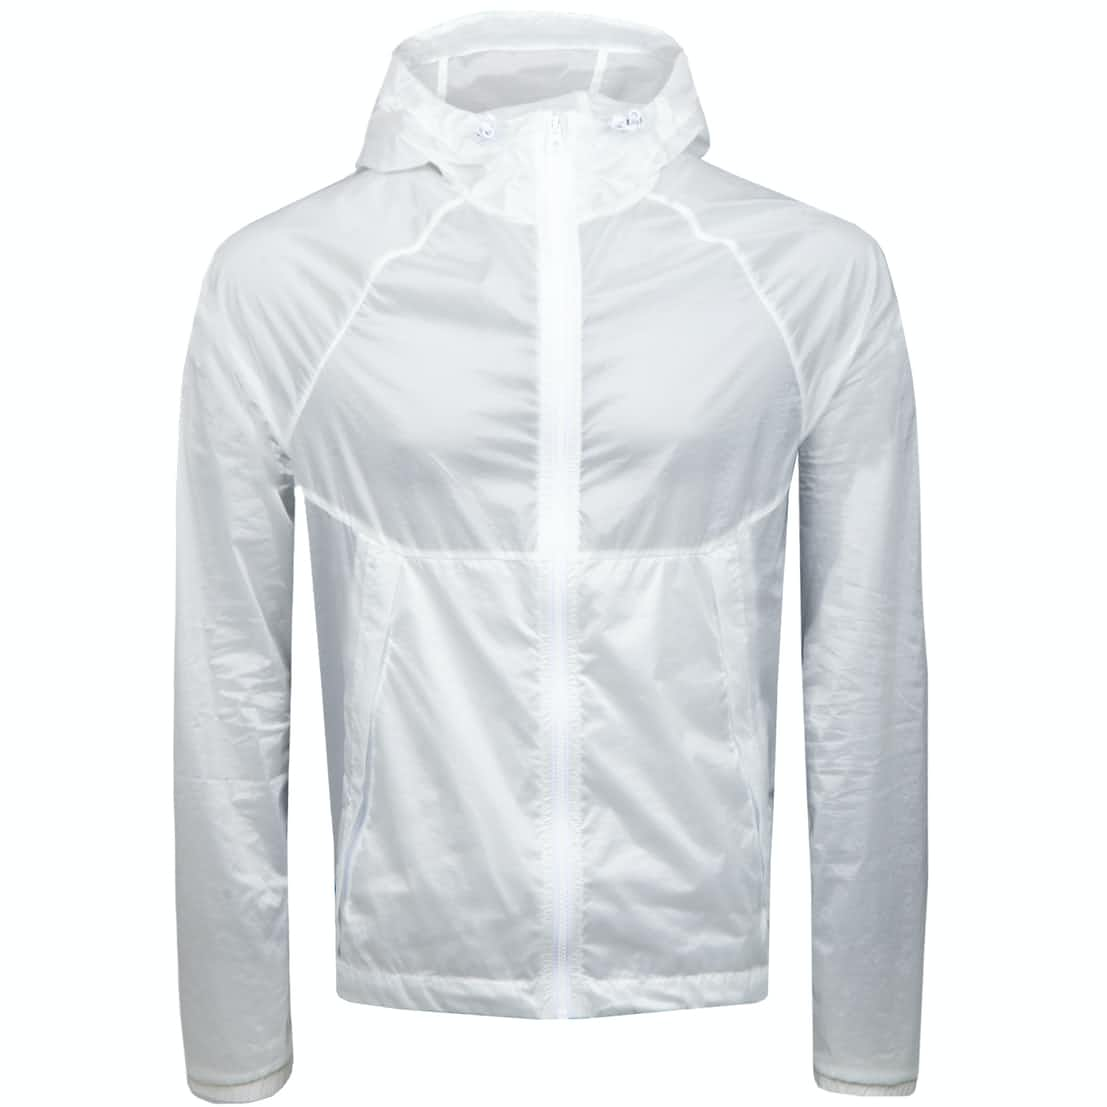 Keene Jacket Transparent Nylon White - SS18